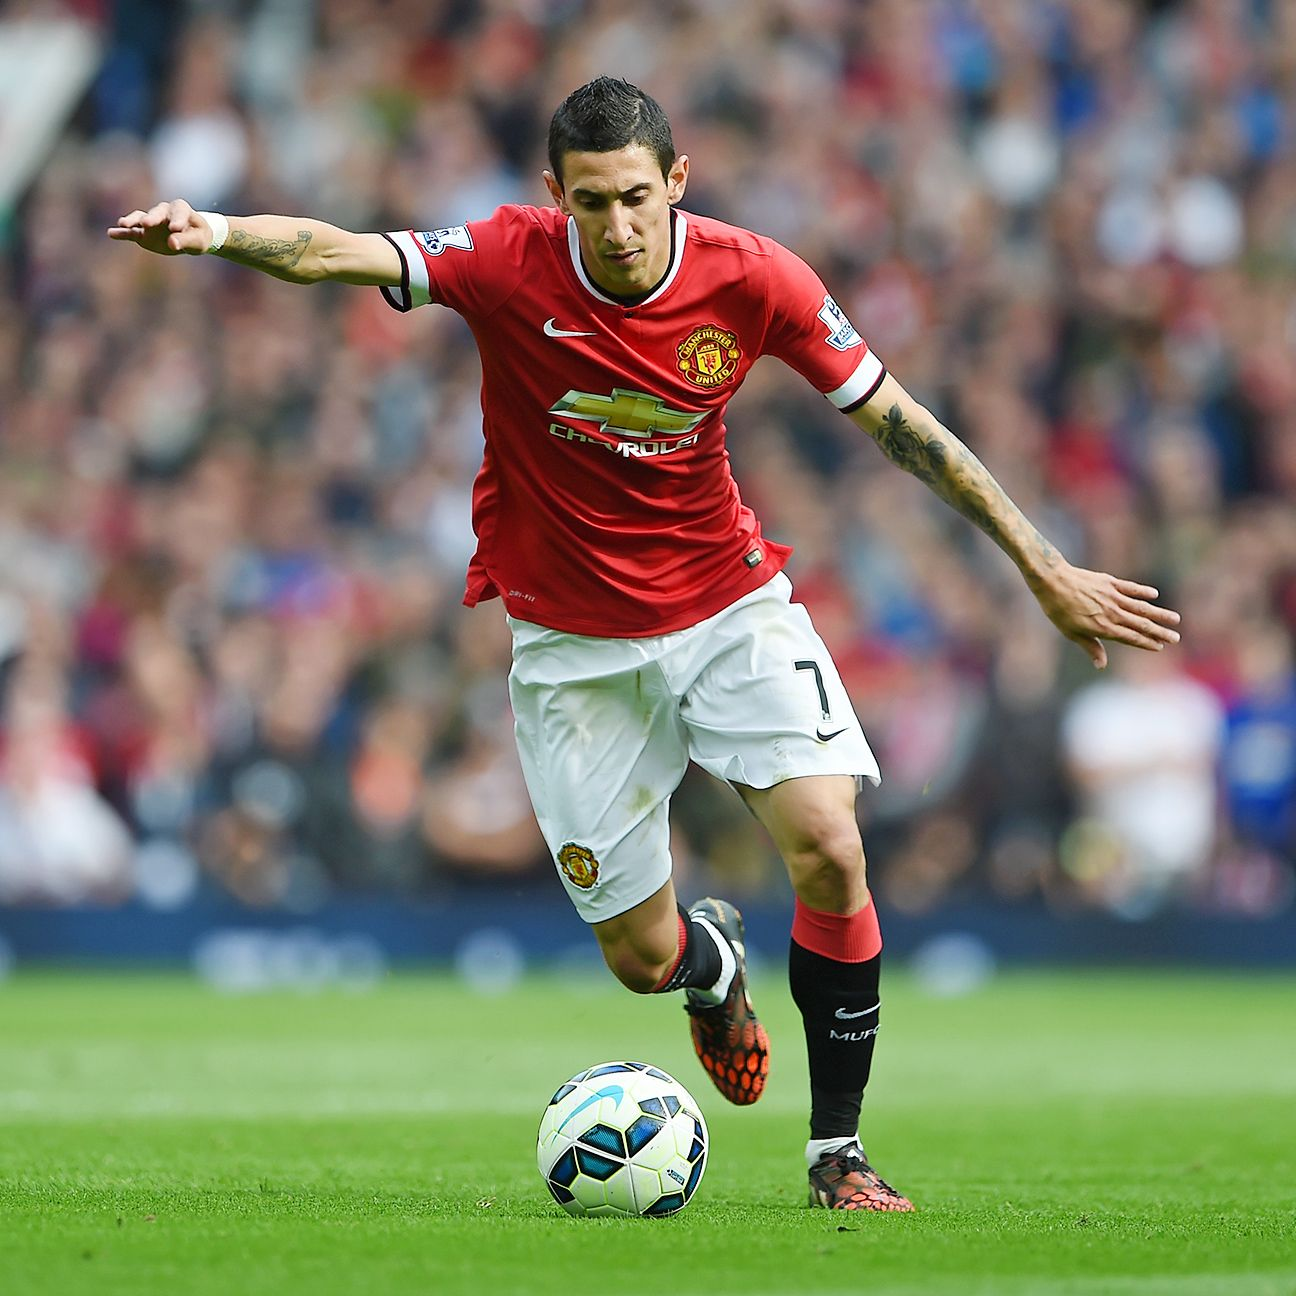 Manchester United's Angel di Maria has three goals in his last four matches.